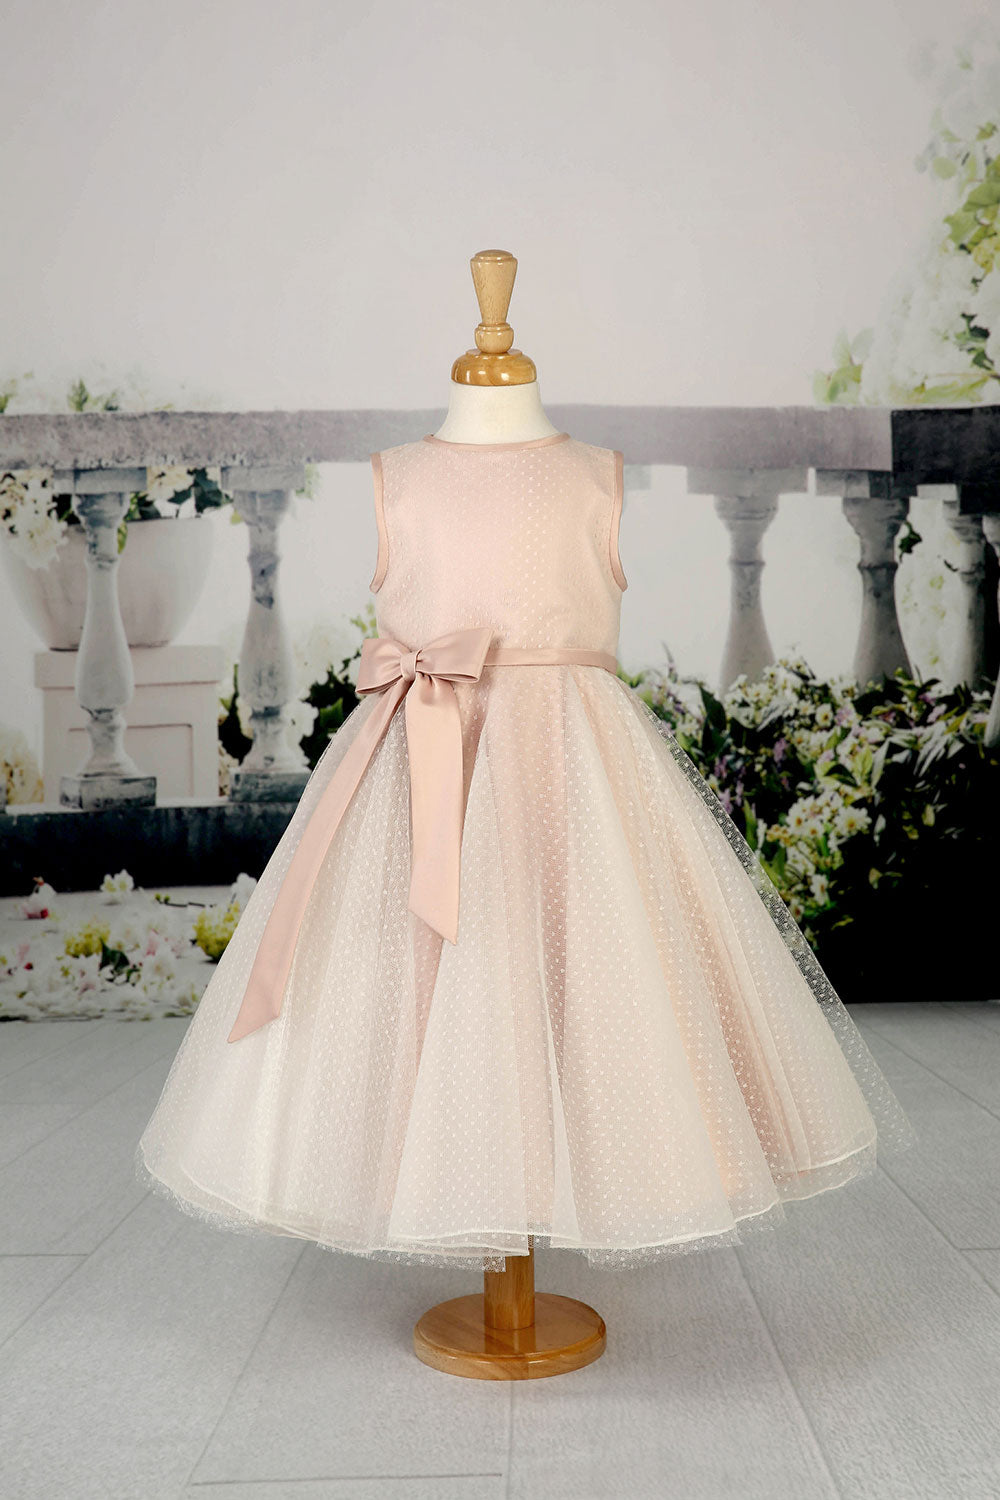 Flower girl dress with a beautiful ivory spotted tulle skirt from the Emma Bridals collection